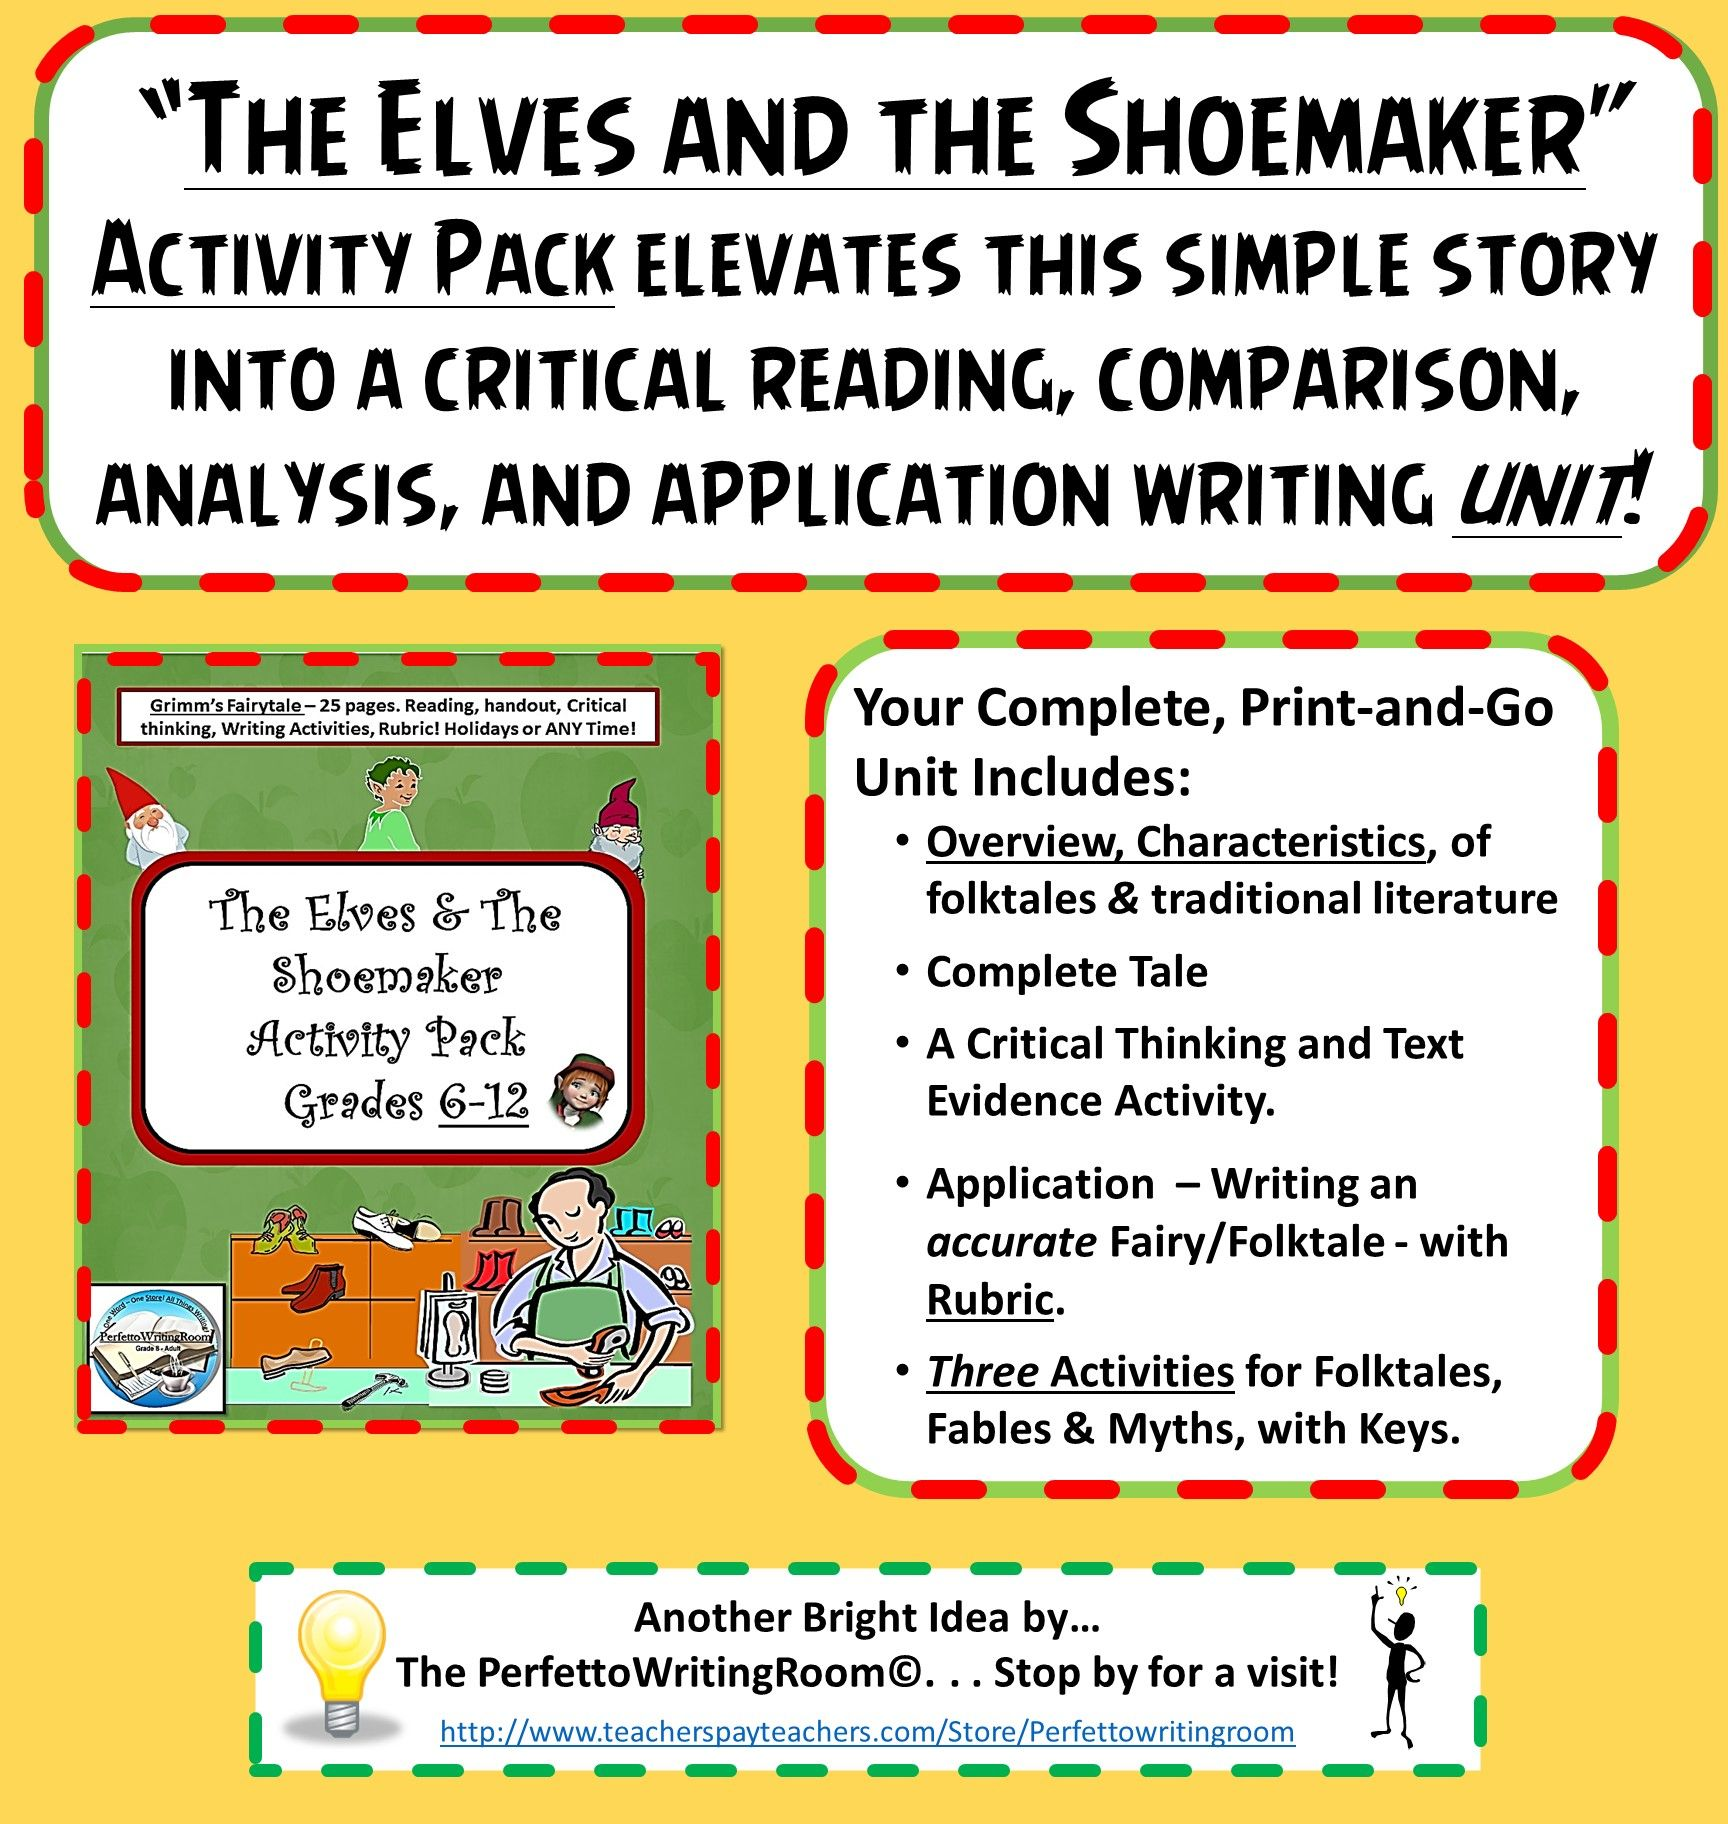 This Complete Unit The Elves And The Shoemaker Is Ideal For Grades 6 12 Includes Critical Thinking Activities Text Evidence Activities Junior High Teachers